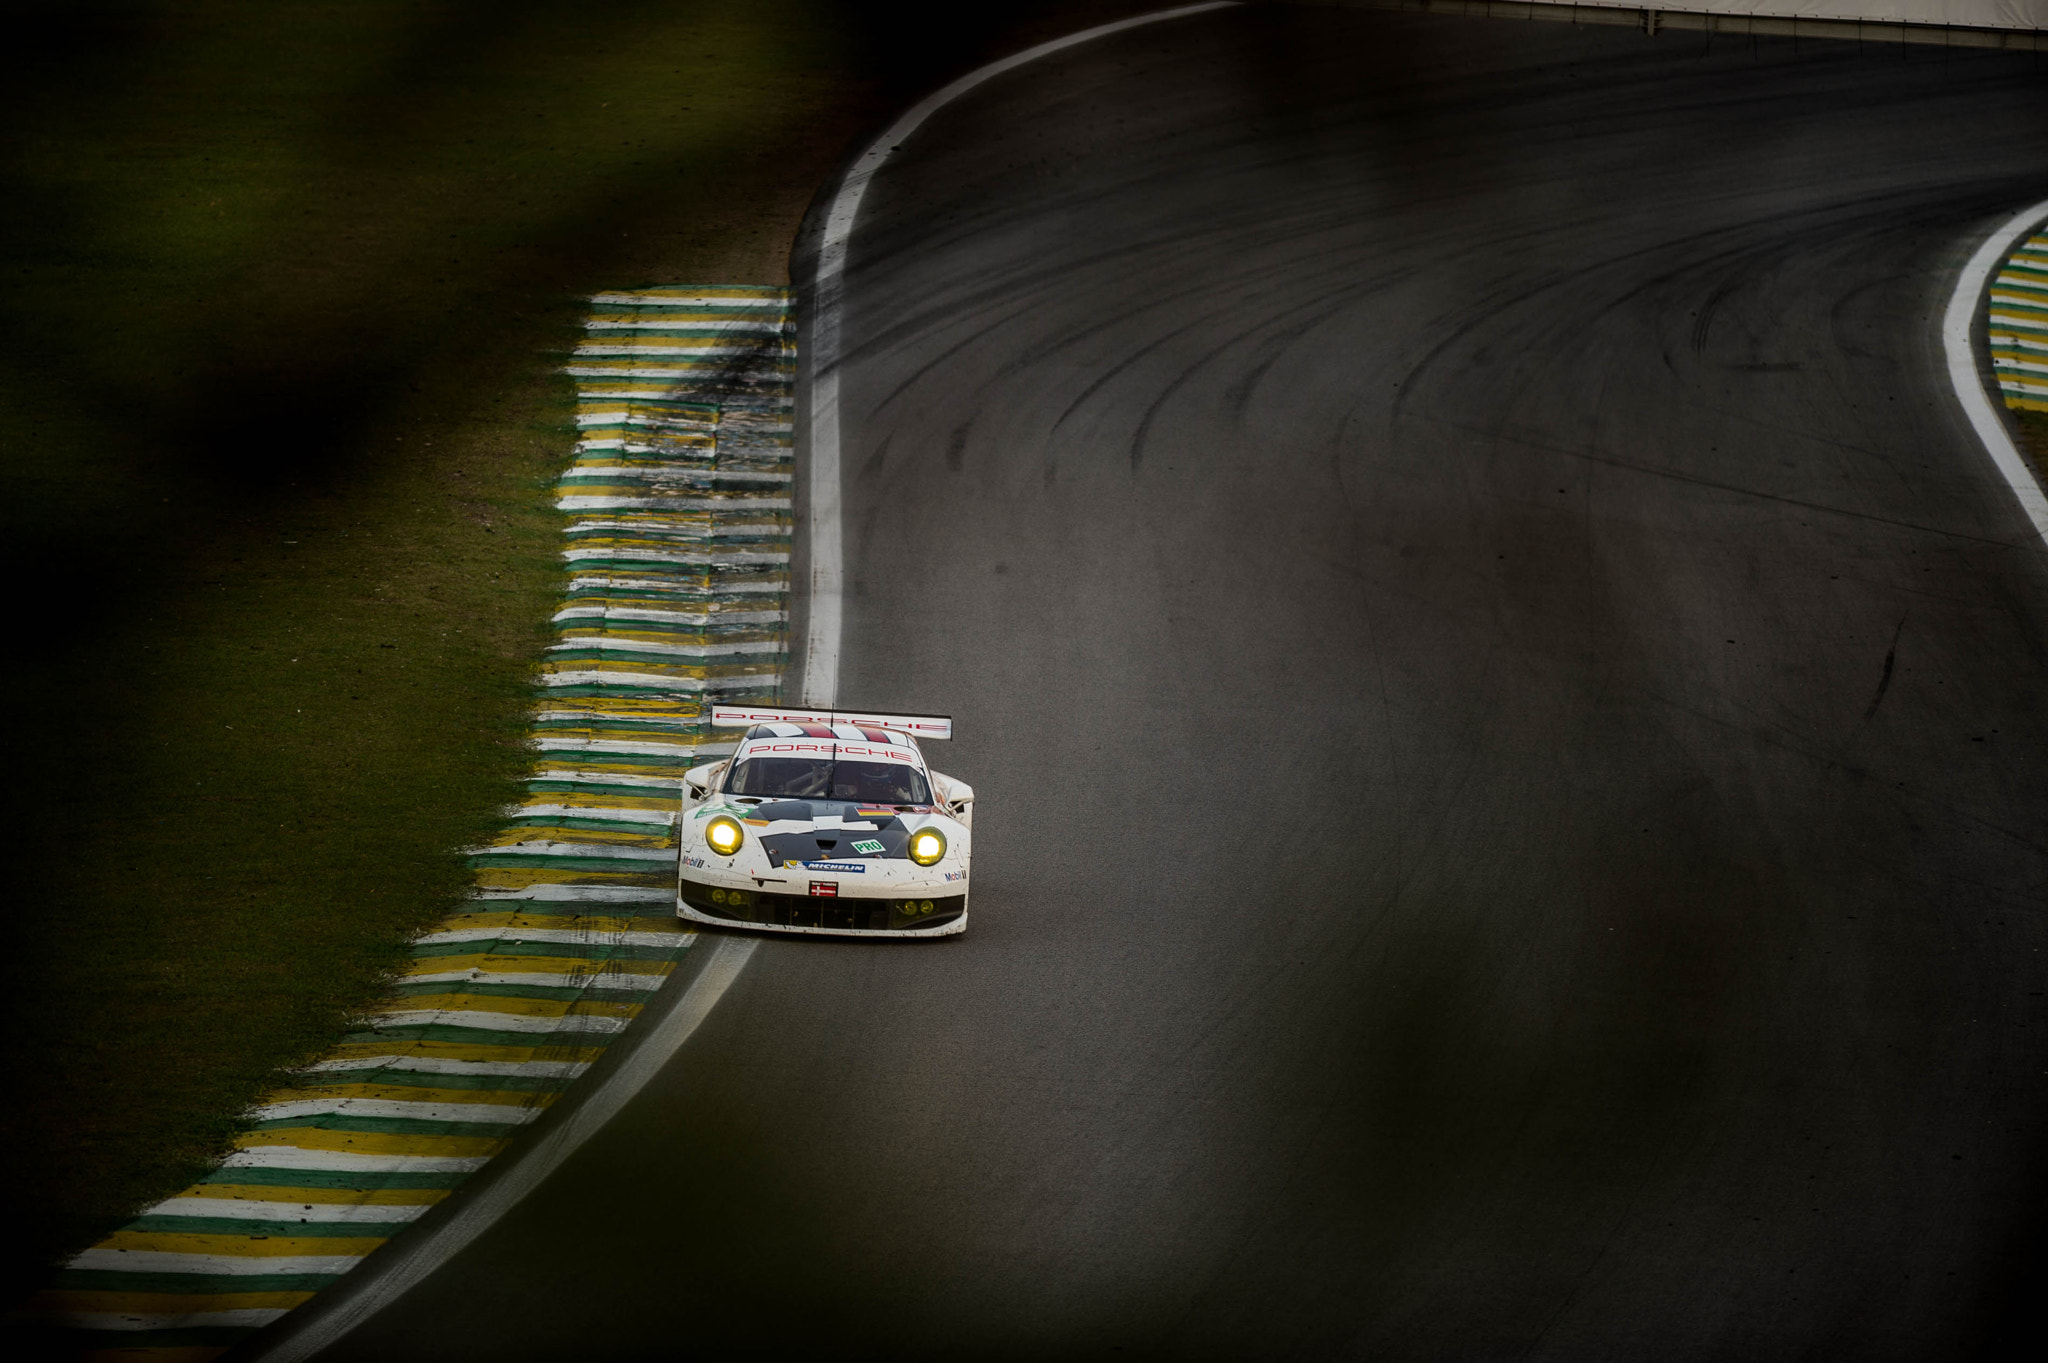 Photograph Le Mans 6h de SP - 911 RSR by Victor Eleutério on 500px